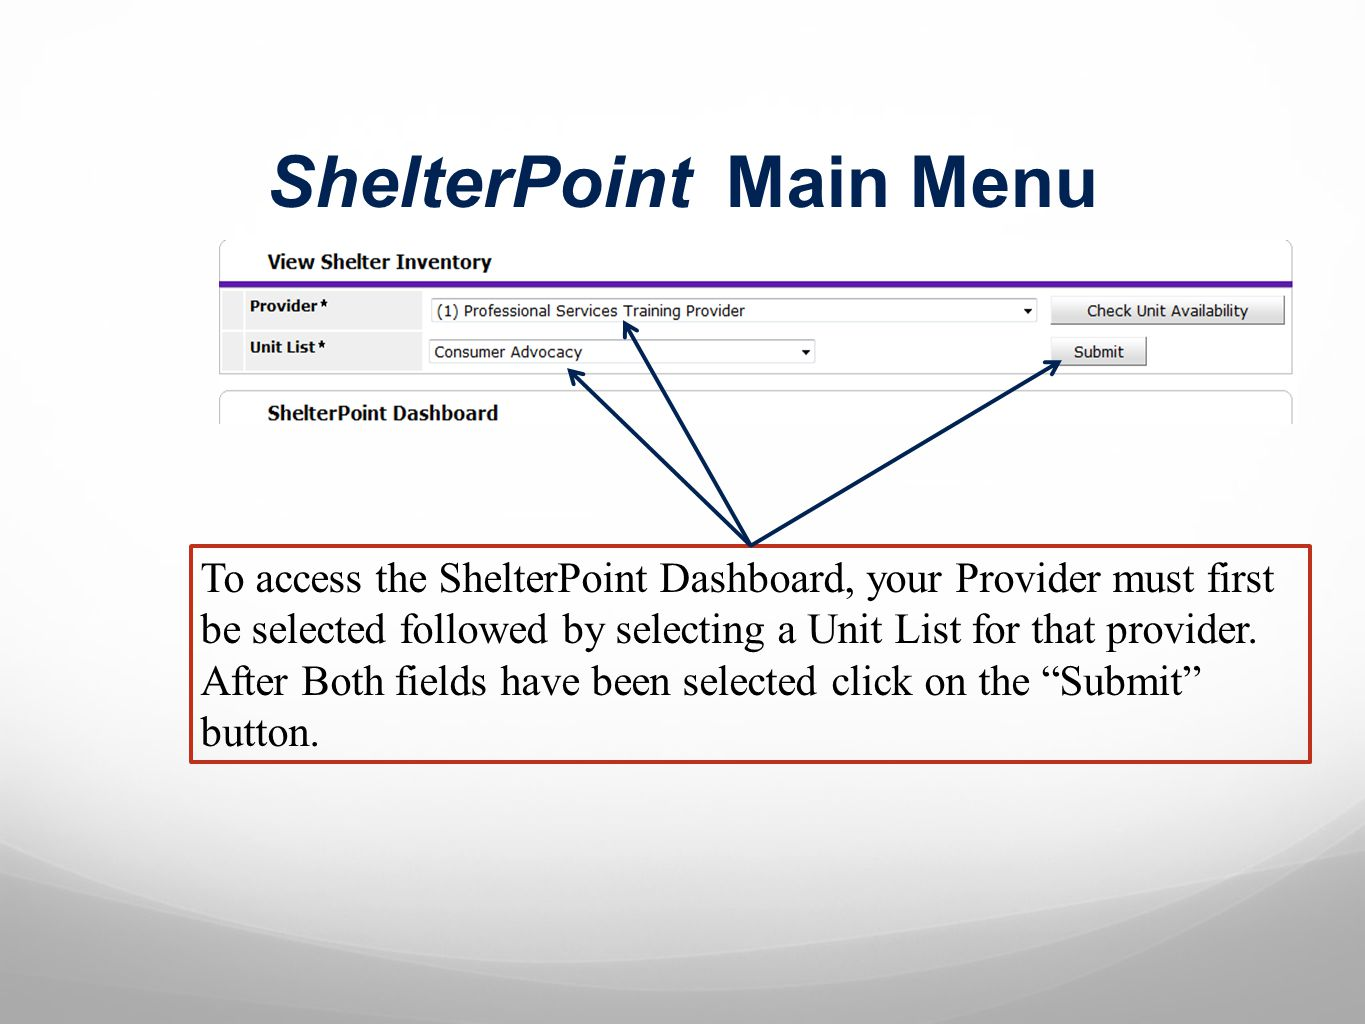 AID Shelter – Check In Referral: Shelter Inventory View Check In From Plus Sign